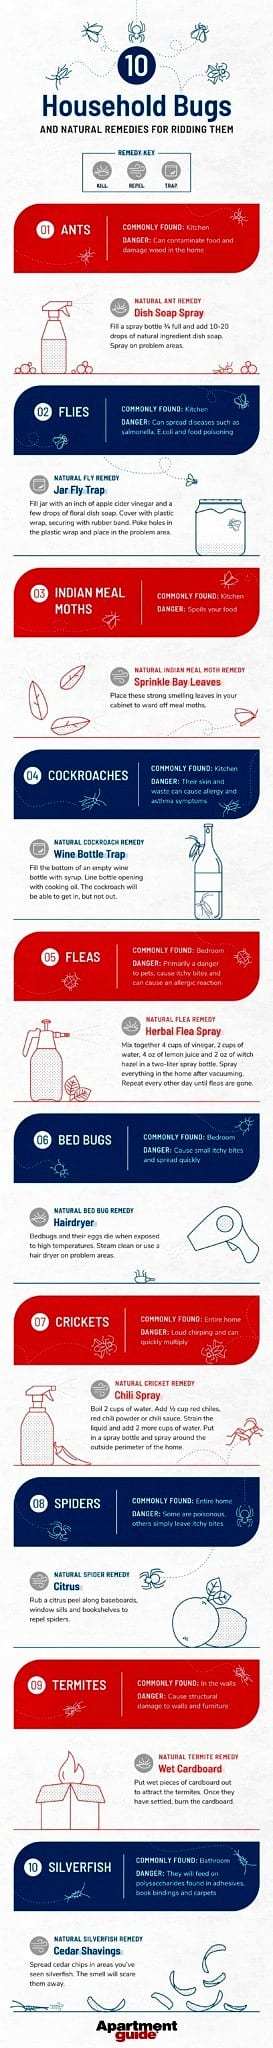 infographic of types of household bugs and remedies